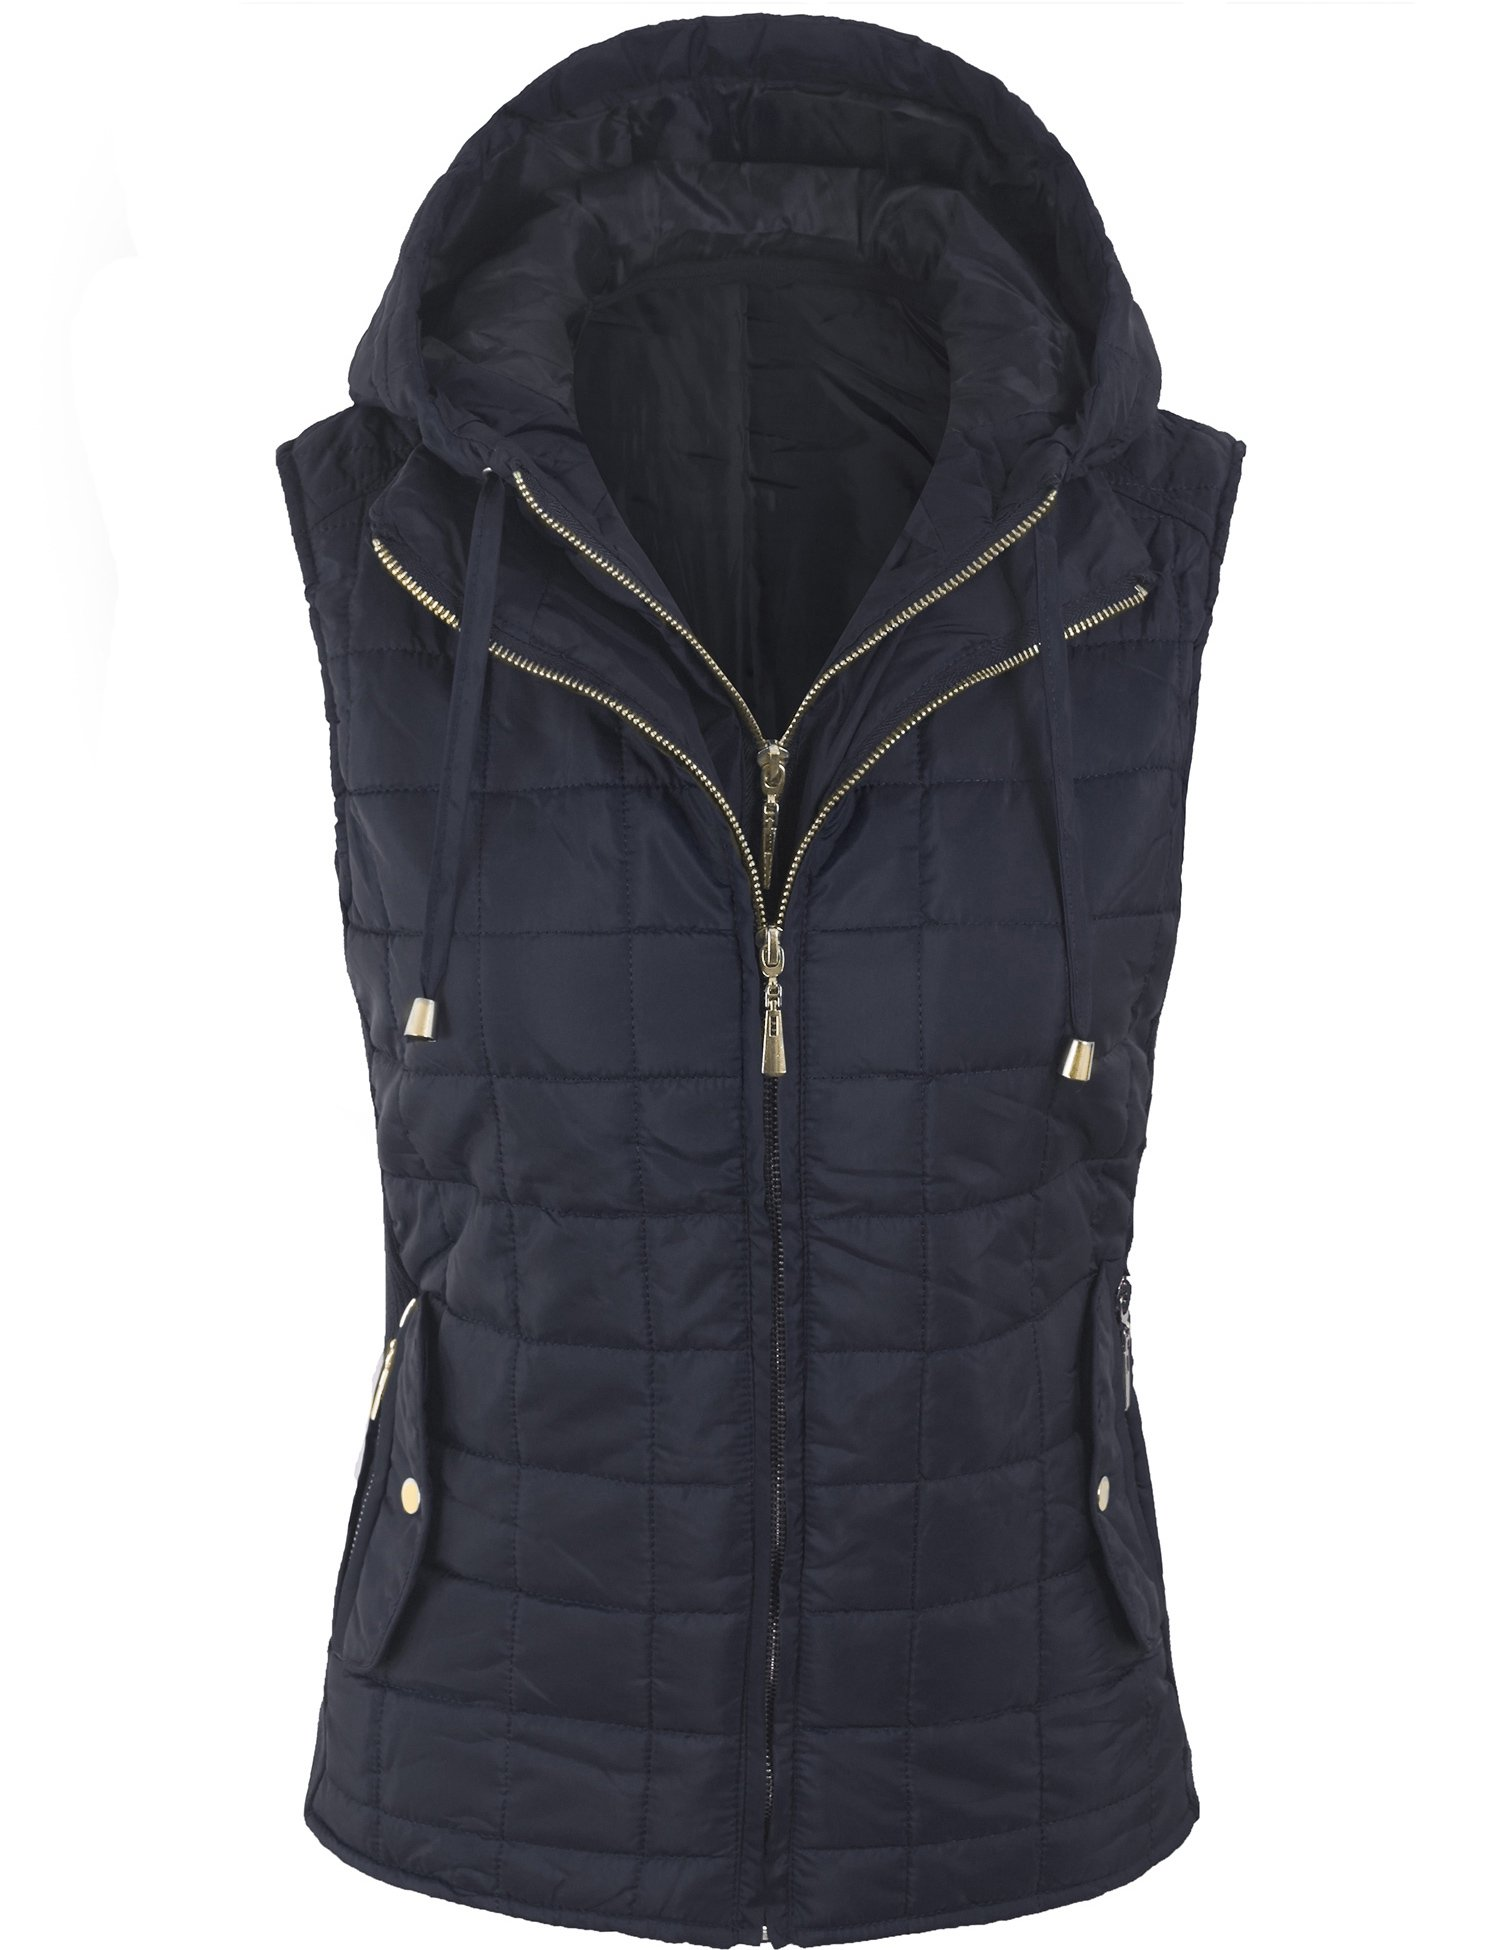 BOHENY Womens Quilted Fully Lined Lightweight Vest with Hoodie-L-Navy_Hoodie